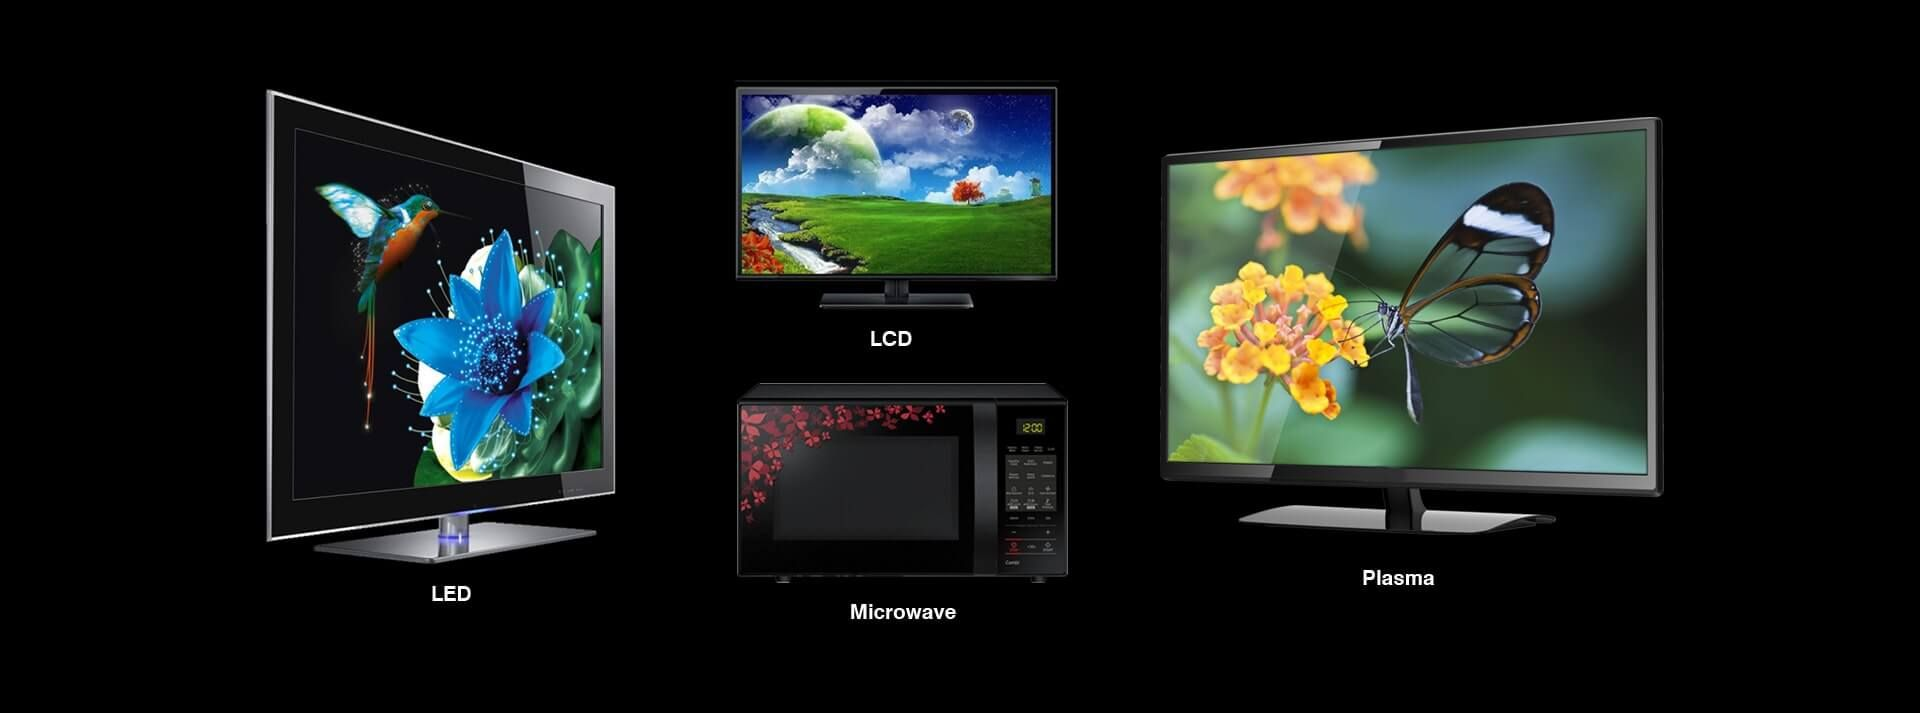 adf7801bb Led repair centre in Delhi NCR - Dhawan Electronics is the best led tv  repair and installation services in the over the delhi Ncr.